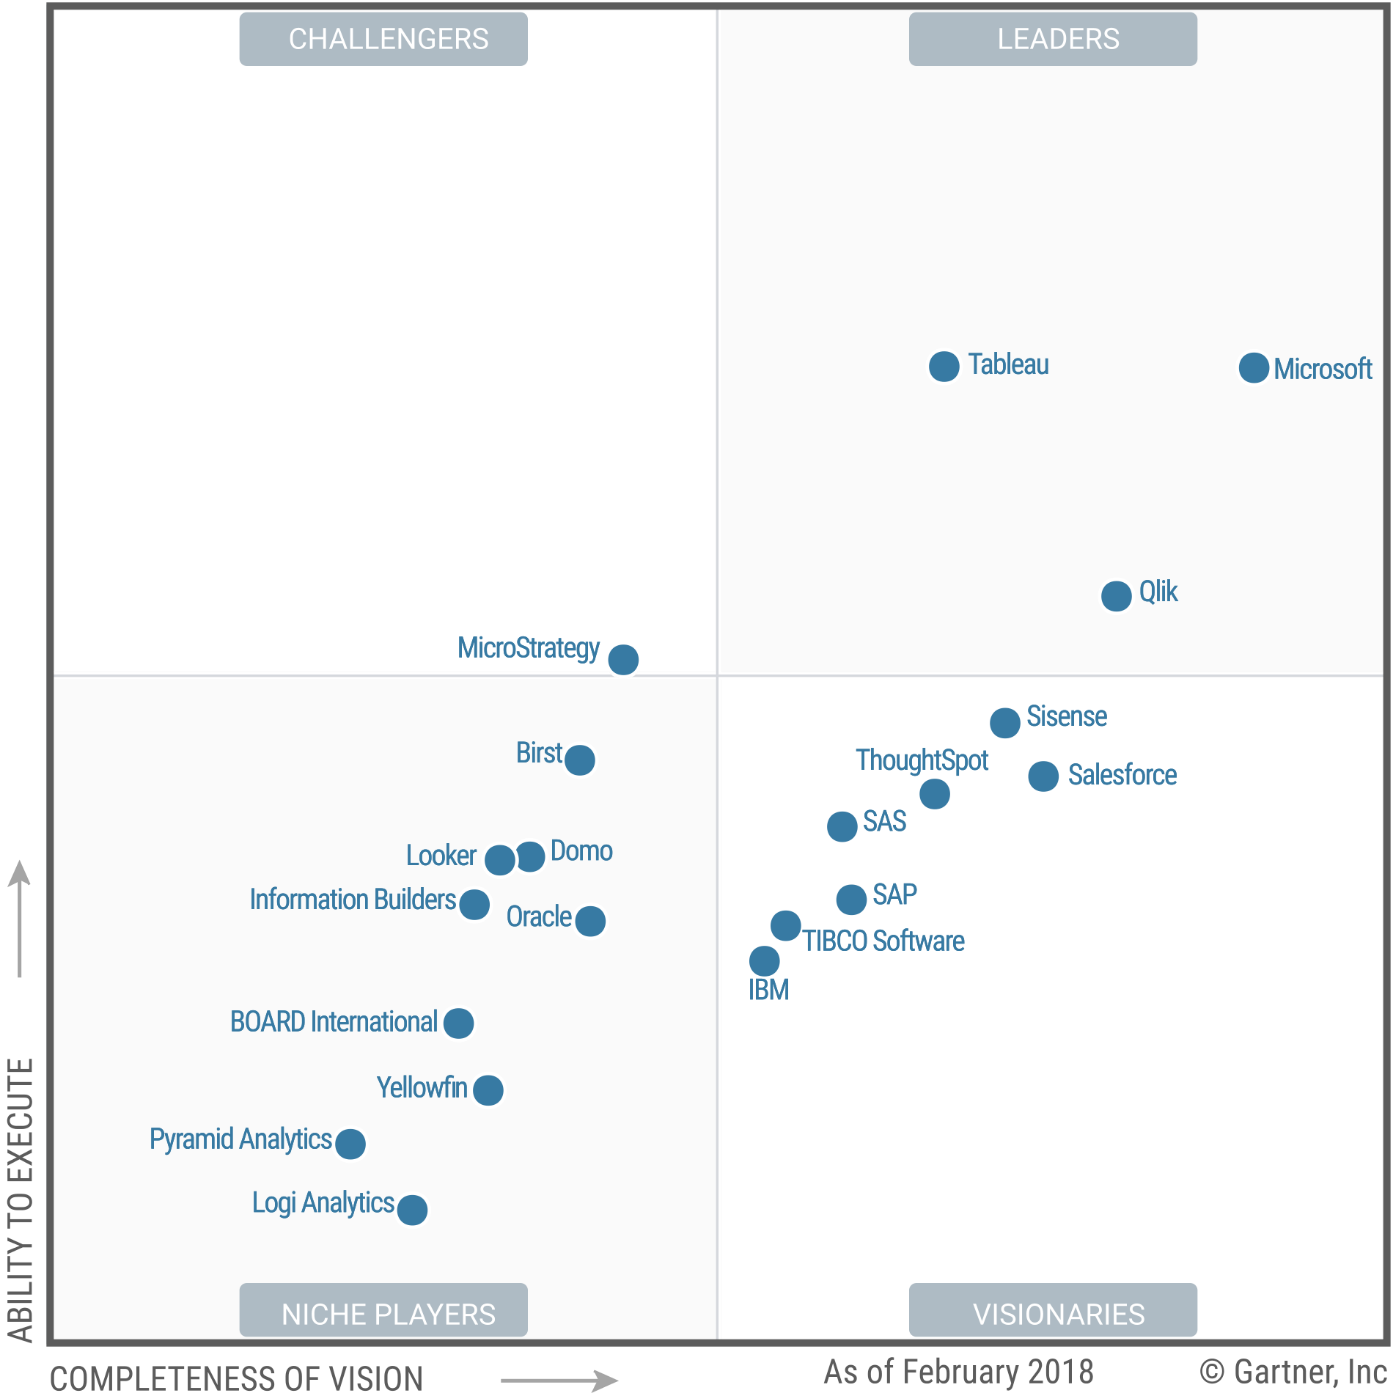 Top 10 Modern Analytics and Business Intelligence platforms 2018(1): Microsoft vs Tableau vs Qlik vs IBM vs Oracle